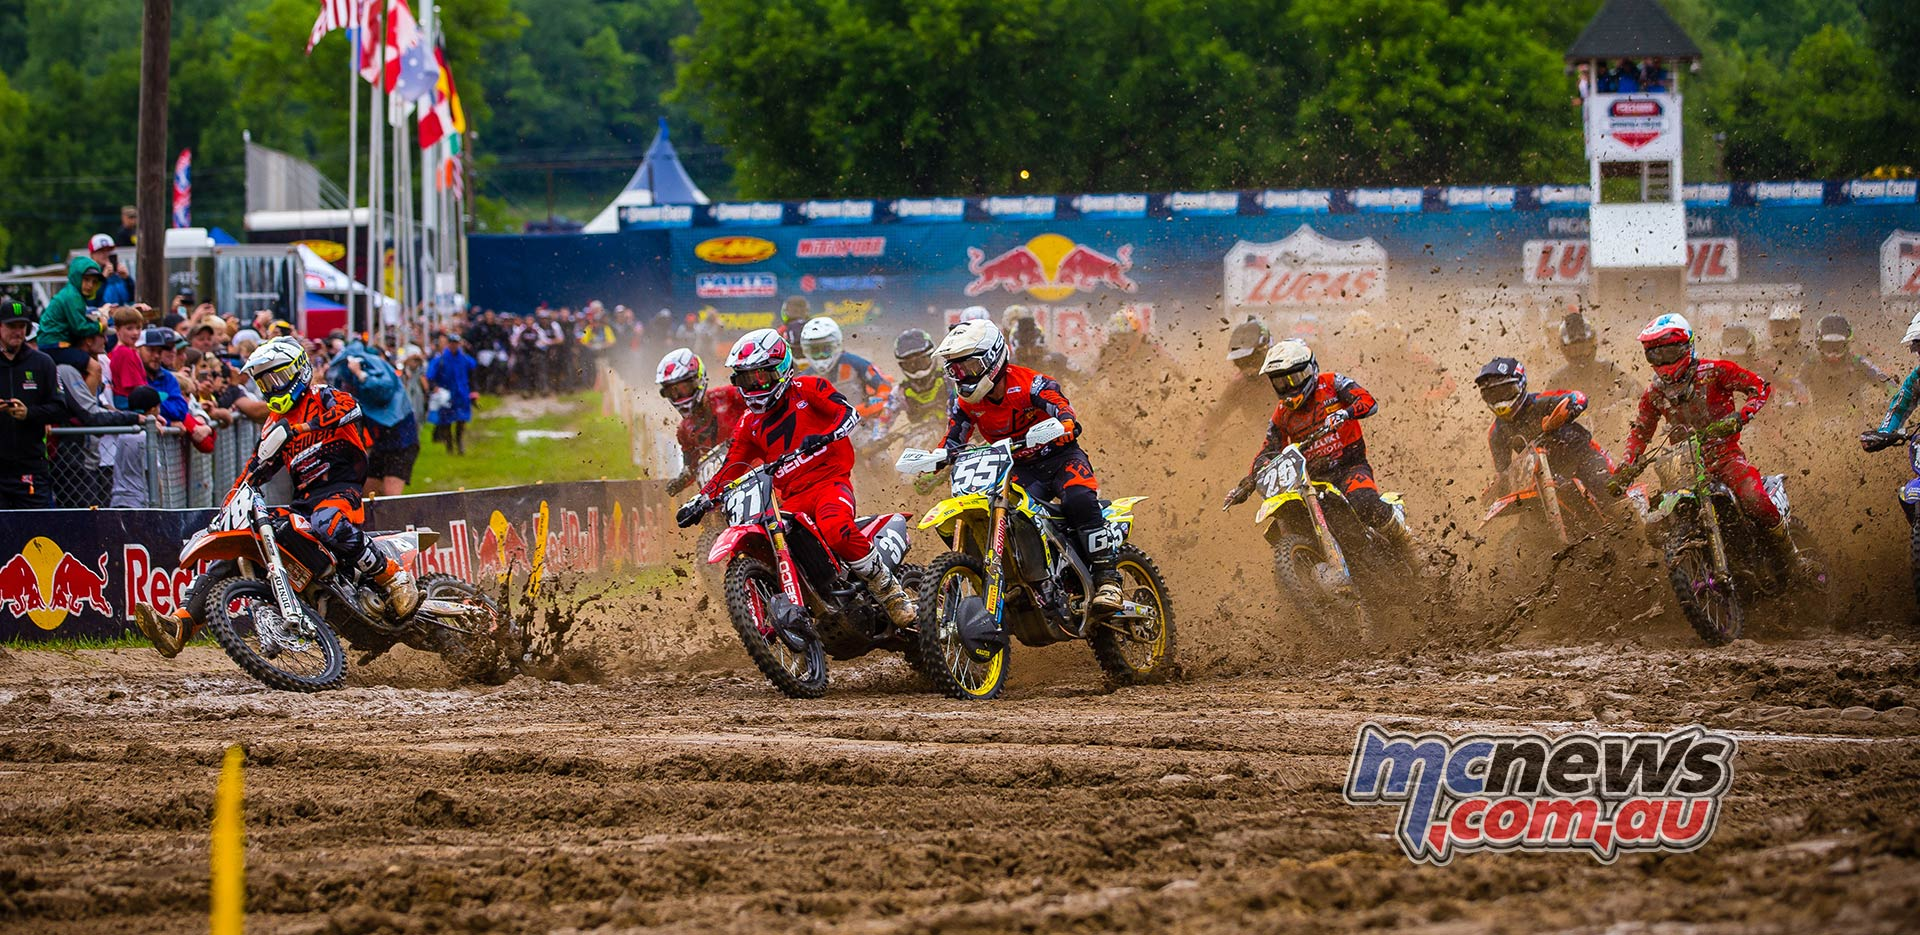 AMA MX SpringCreek Alves Hampshire Peters